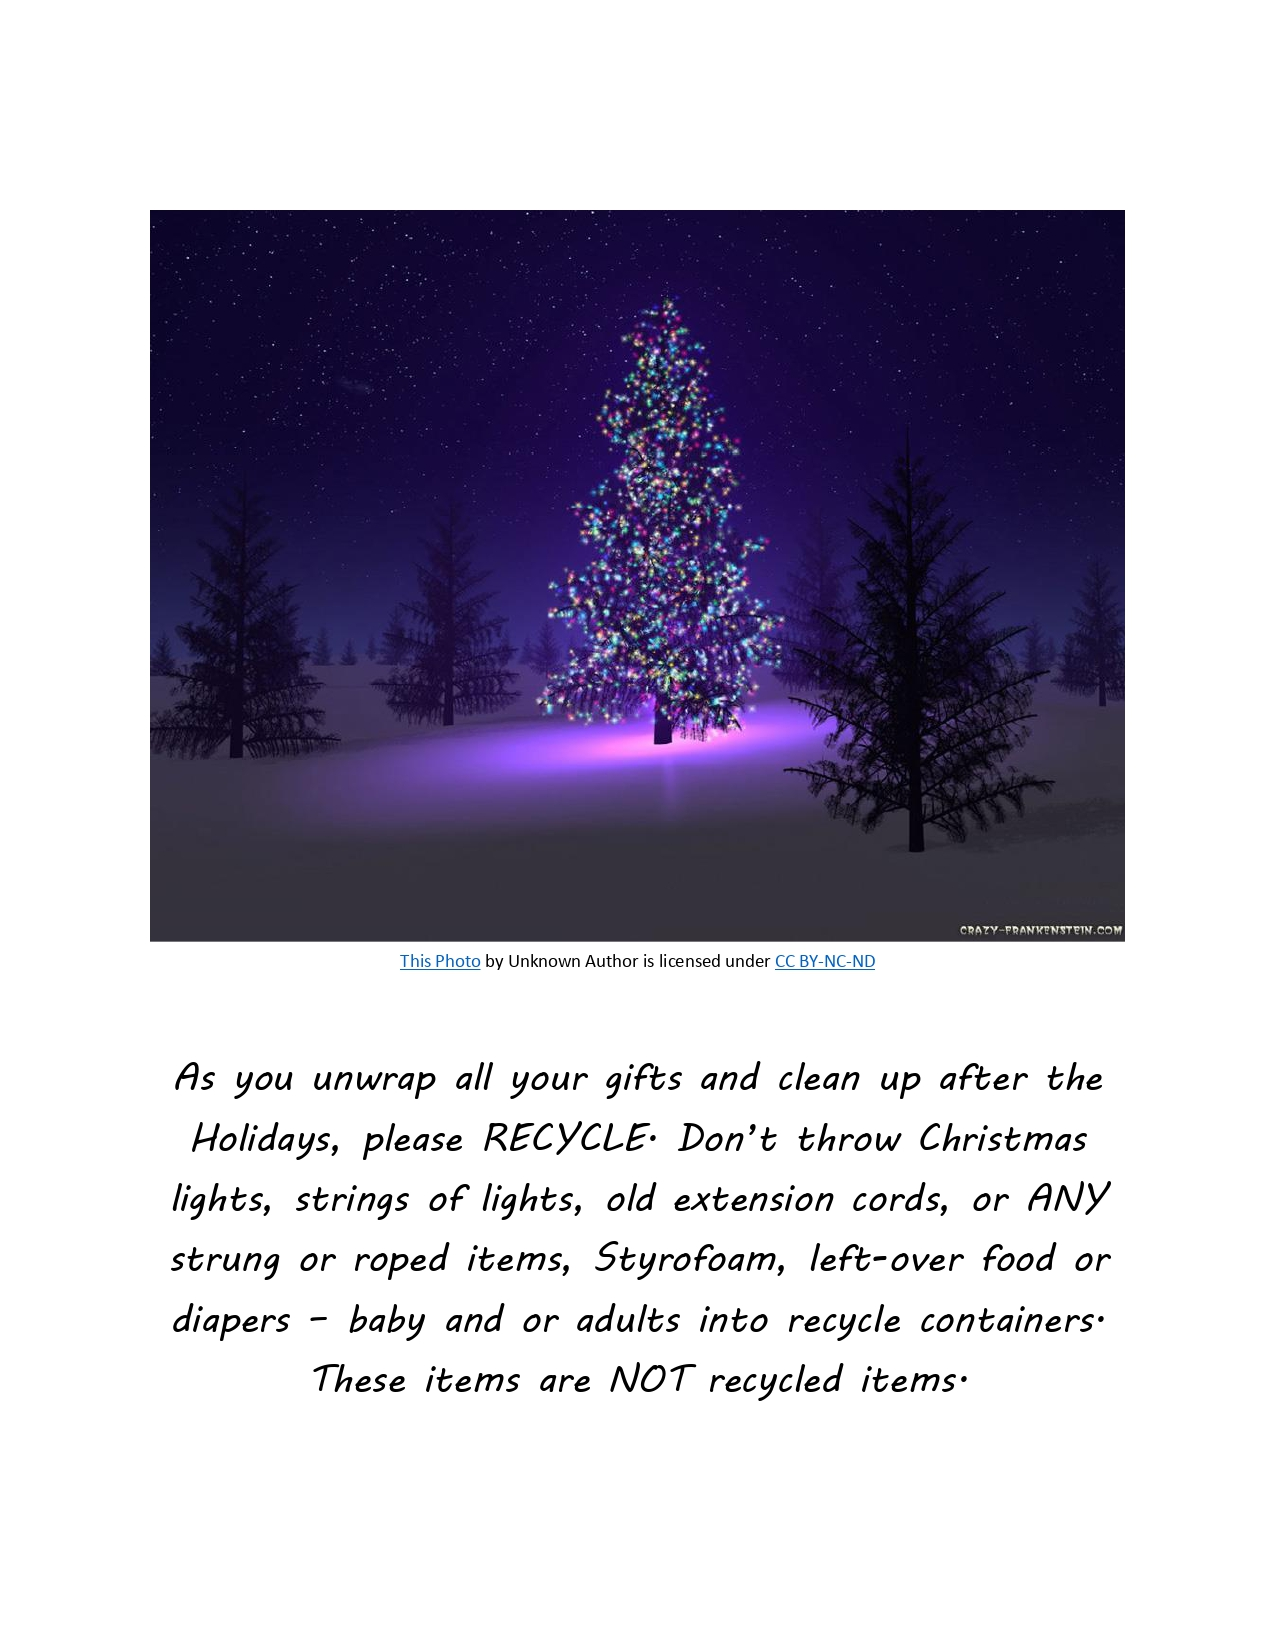 2019-Holiday-Recycle-Notice_page-0001